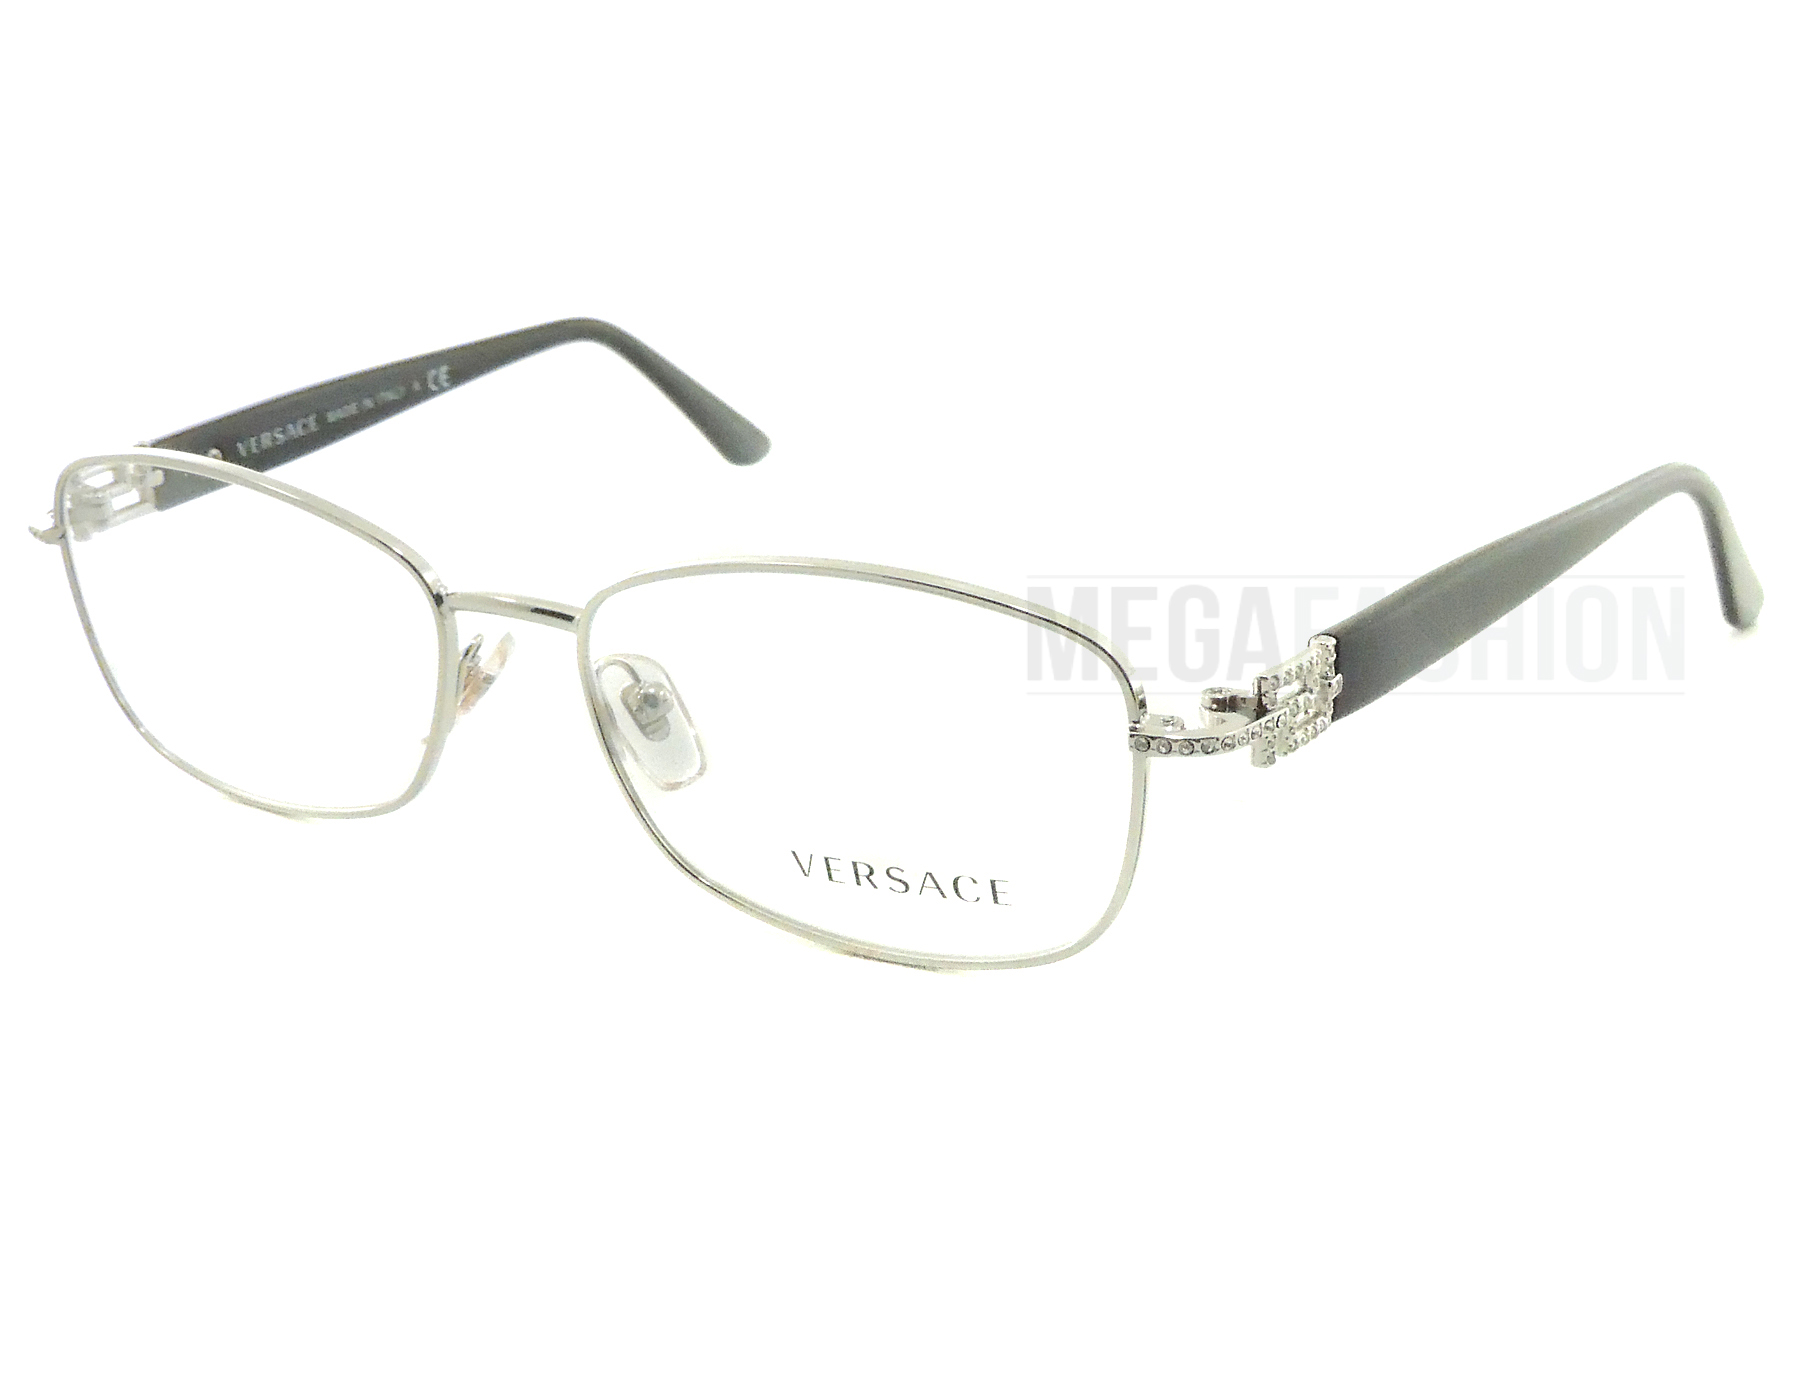 6f90ee35723 Authentic Versace Eyeglasses VE1226B 1000 Silver Black Frames 52mm Rx-ABLE